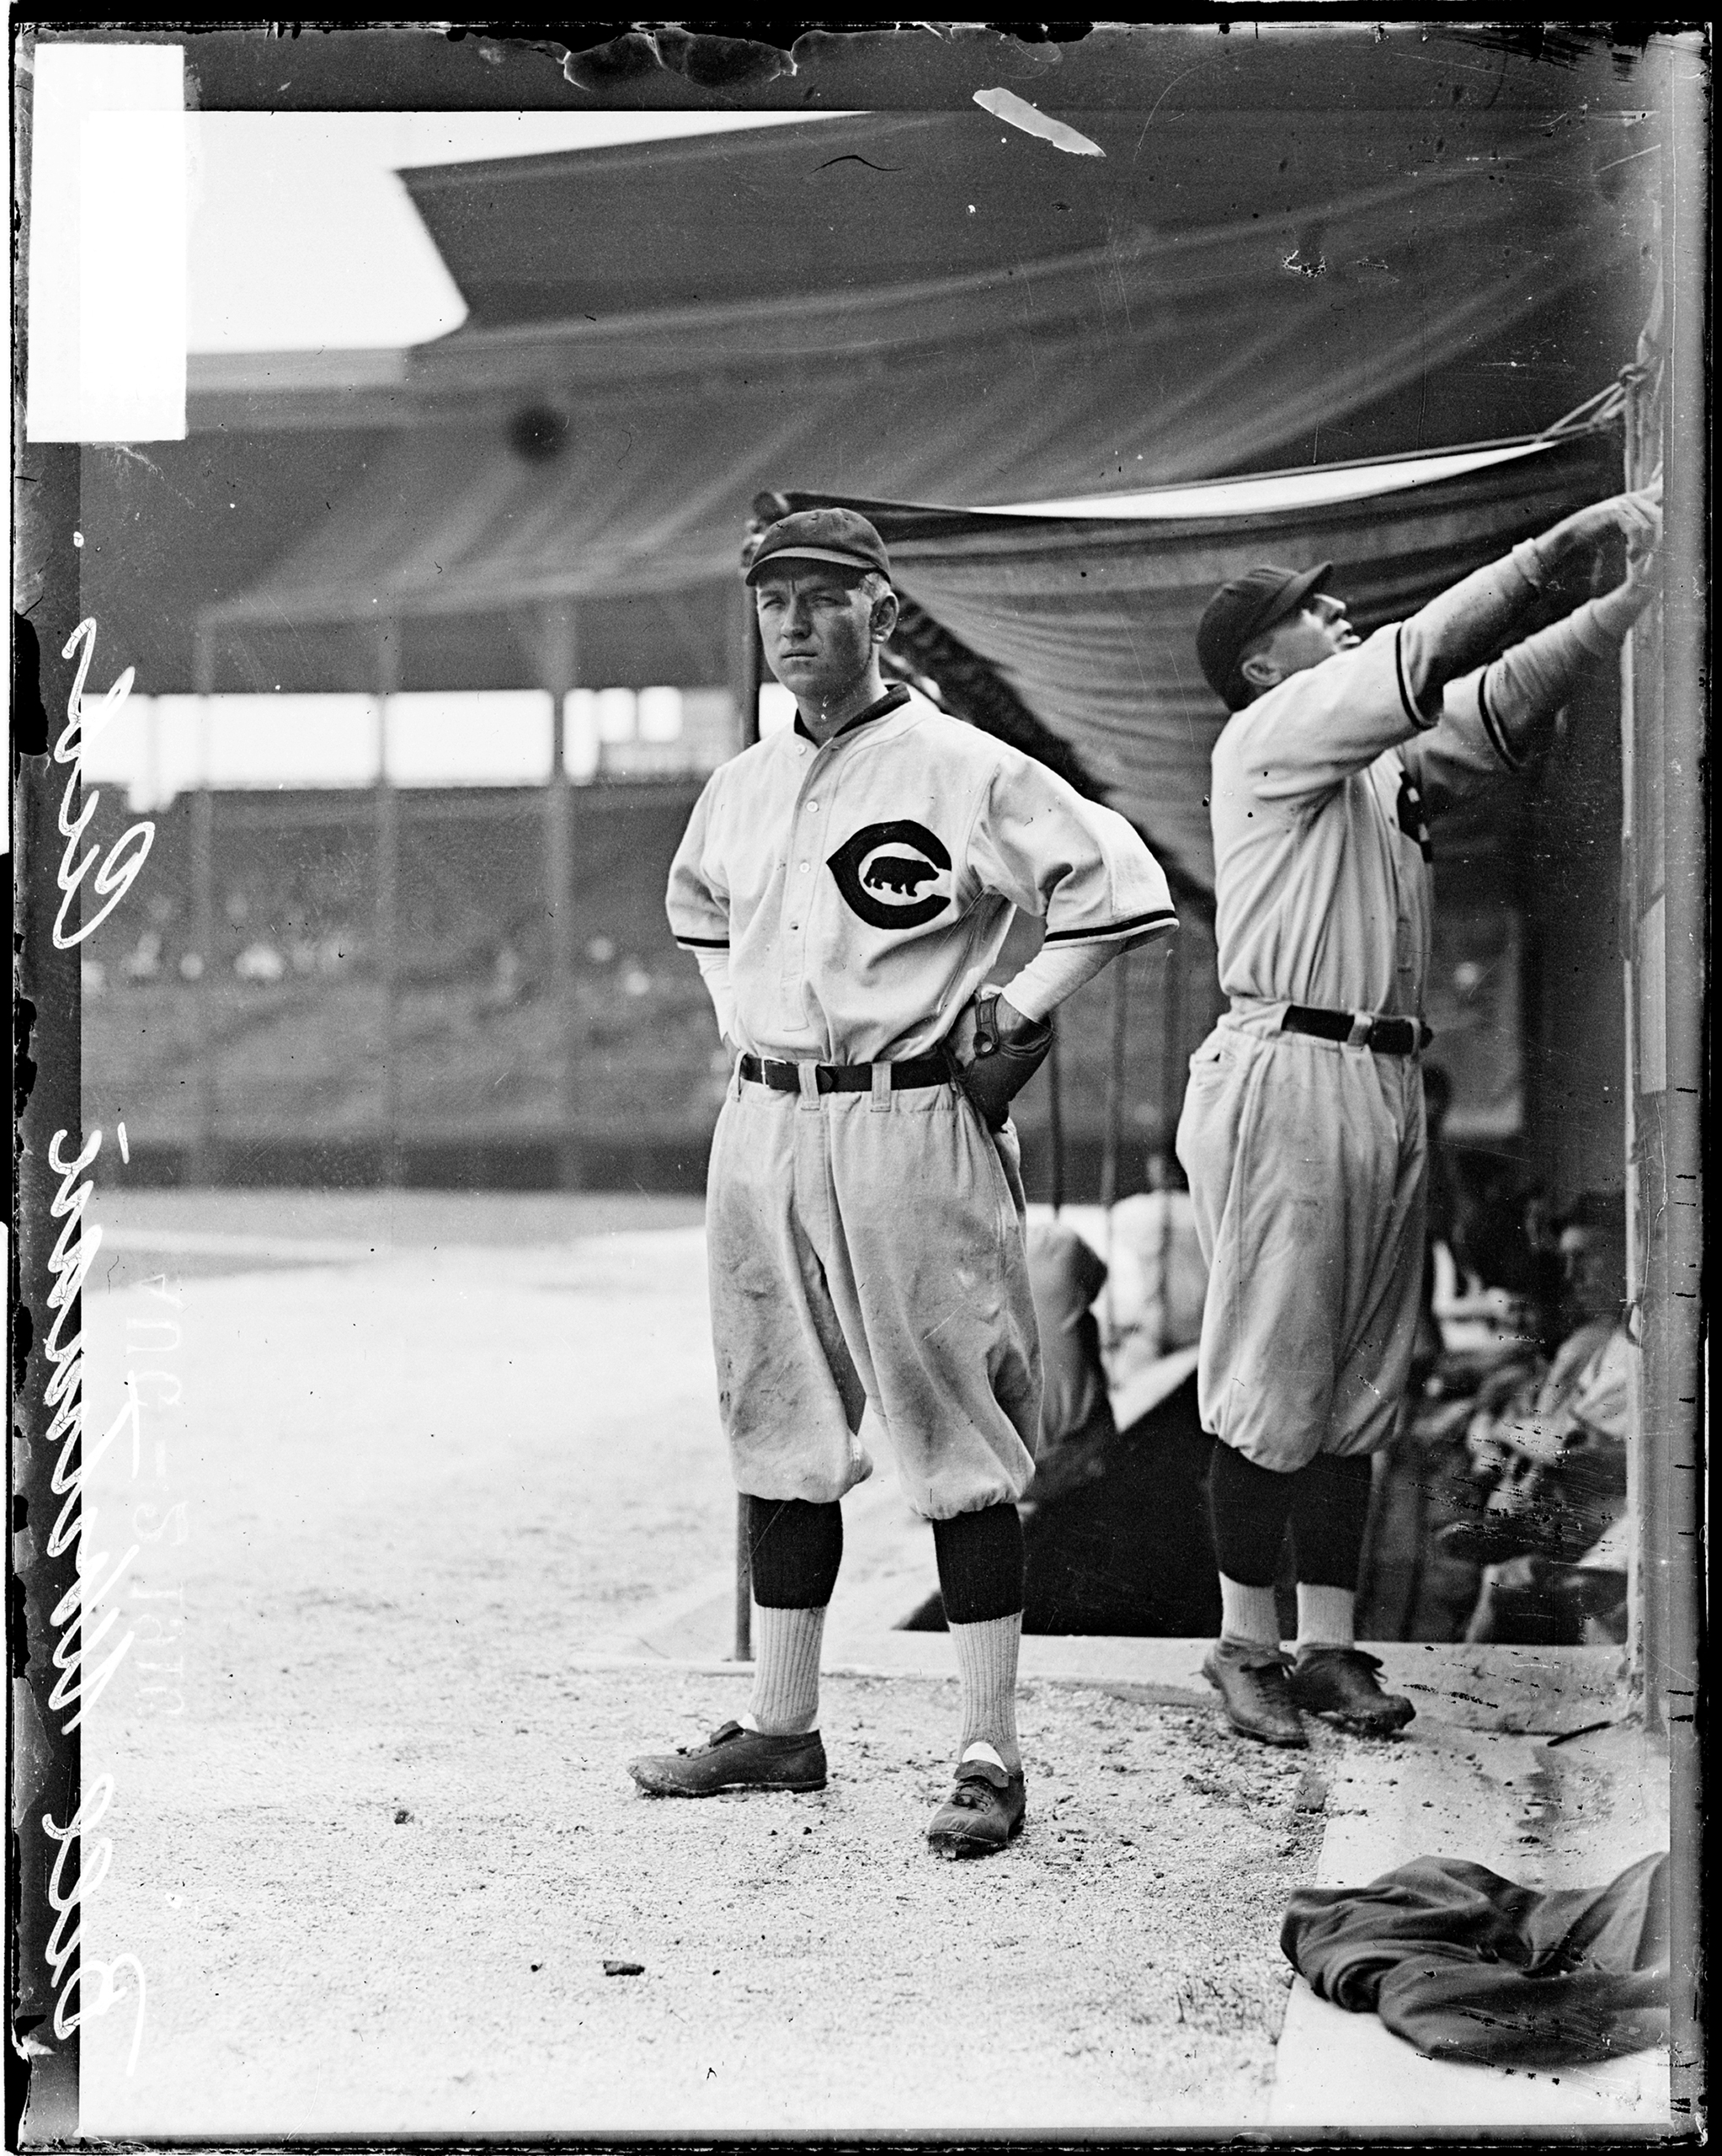 National League's Chicago Cubs baseball player Bill Wortman and an unidentified teammate standing outside the dugout on the field at Weeghman Park, Chicago, 1916.